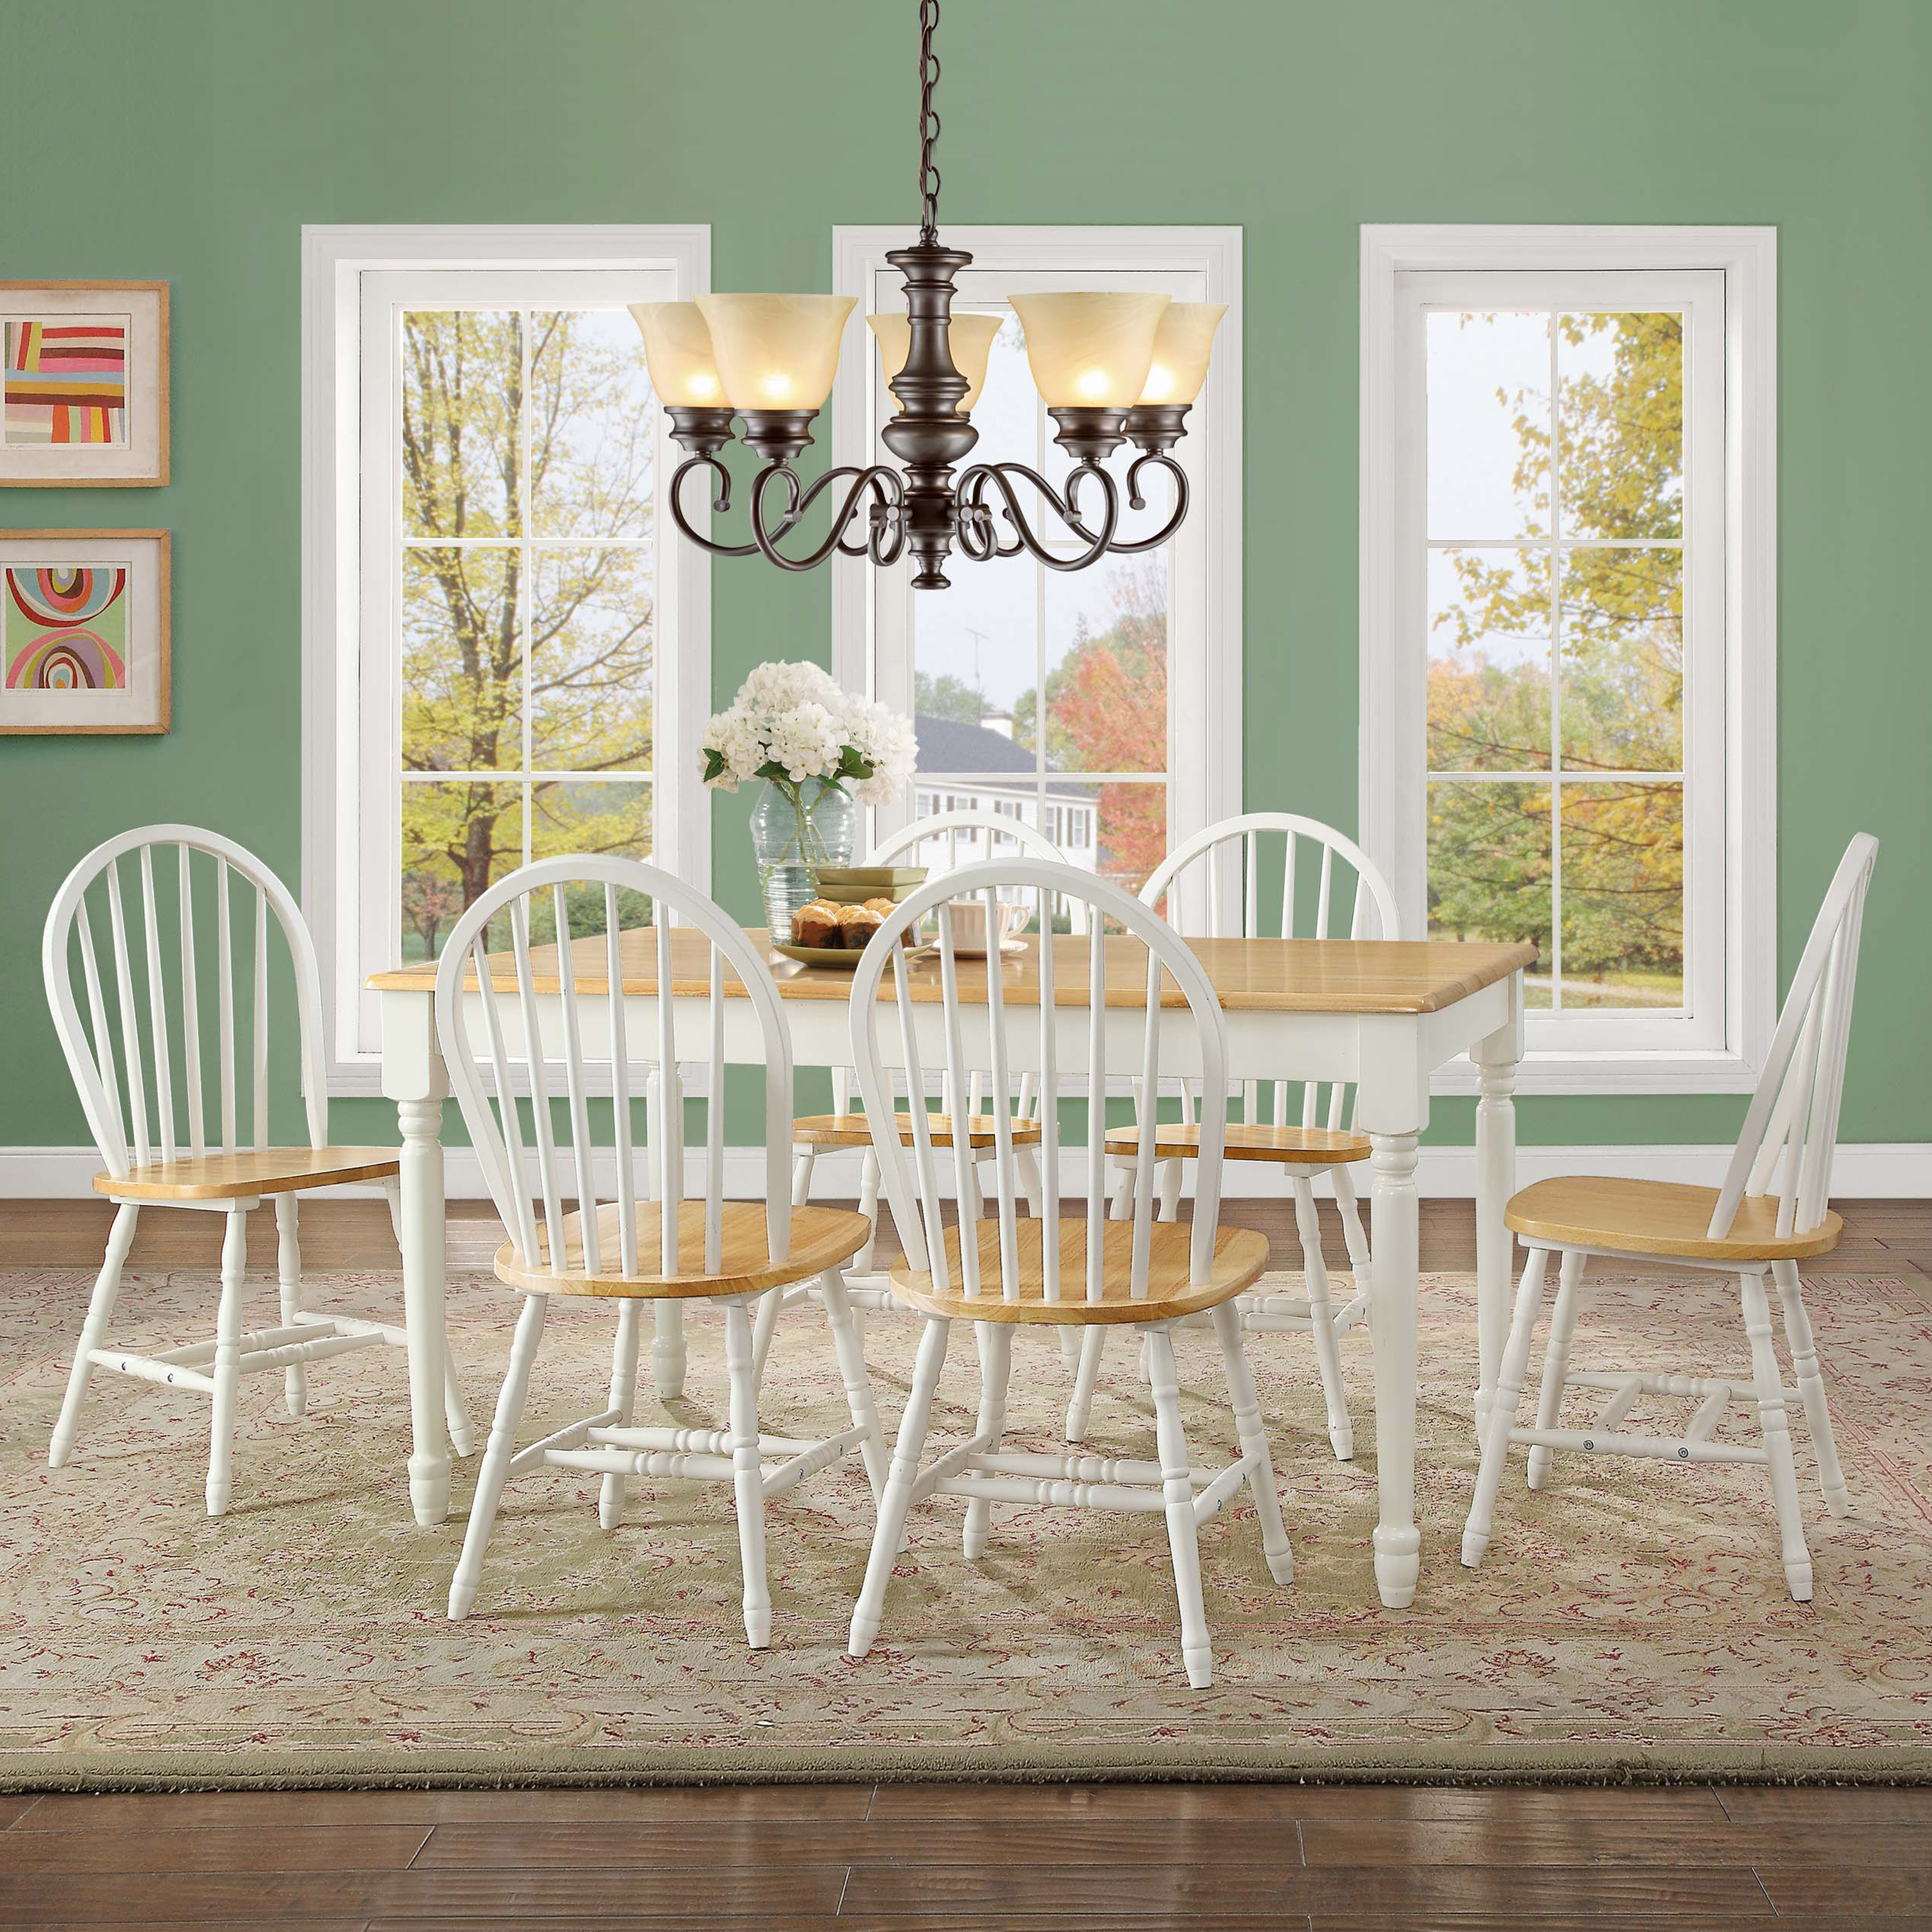 Better Homes and Gardens Autumn Lane 7-Piece Dining Set, White and Natural